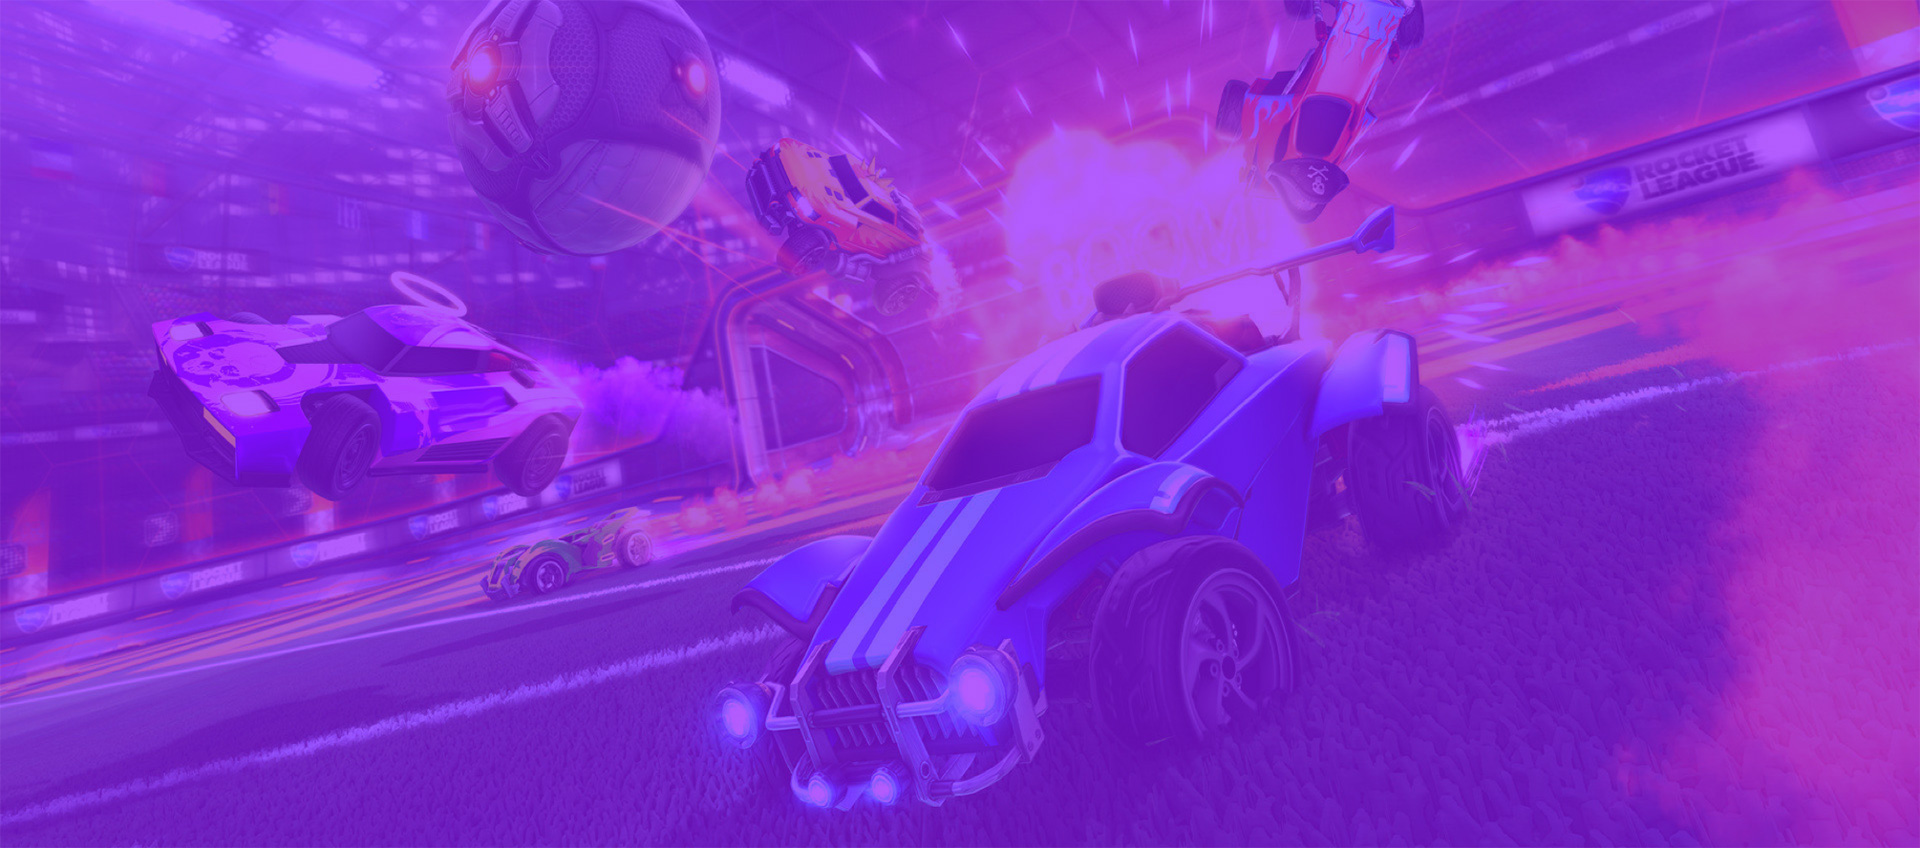 GamingRL's header